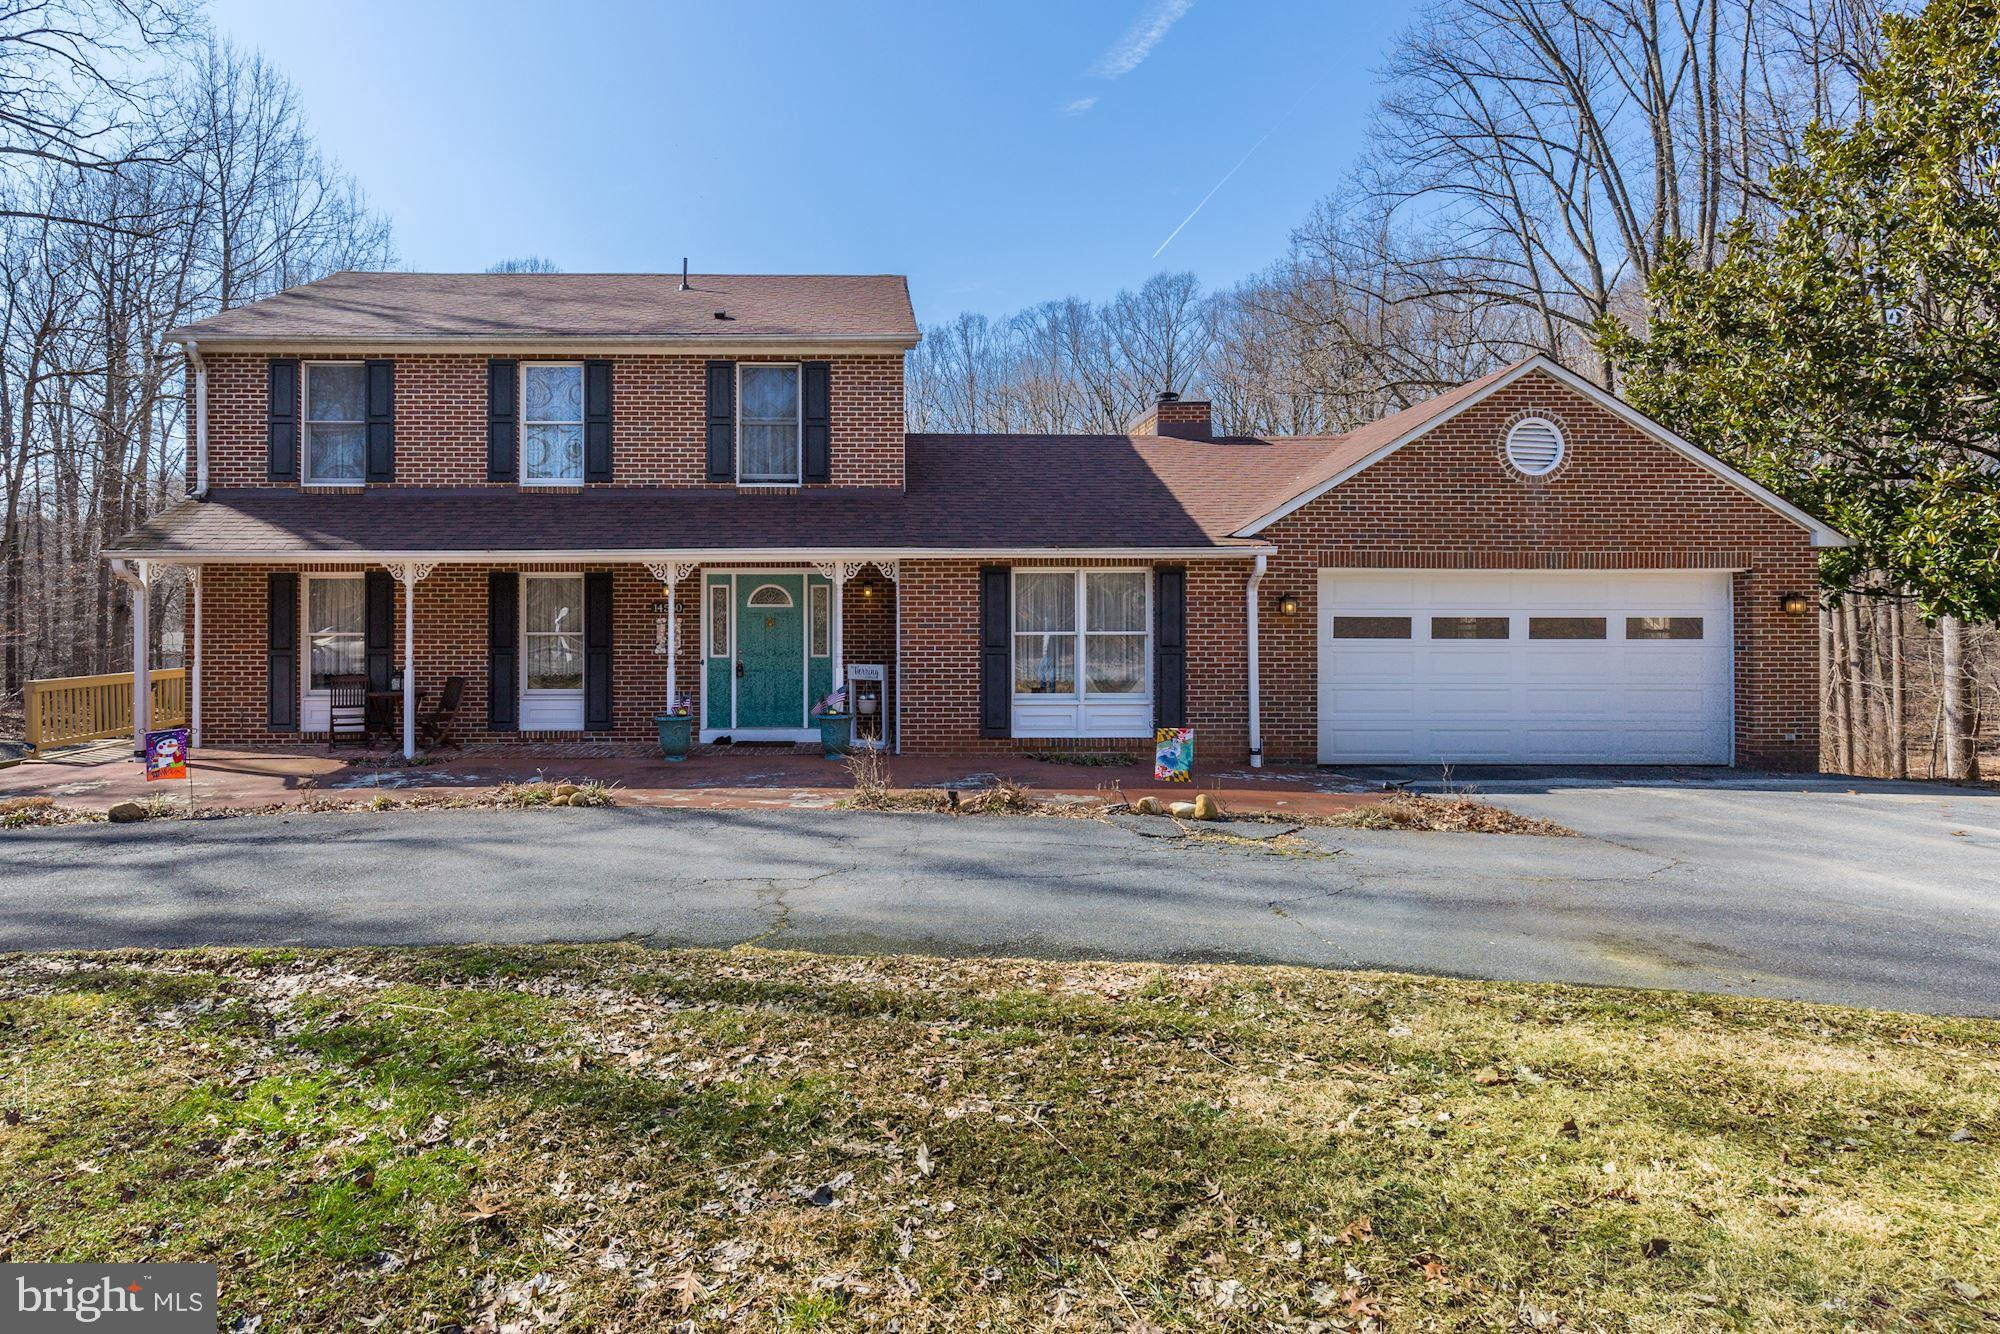 14550 GOOD HOPE ROAD, SILVER SPRING, MD 20905